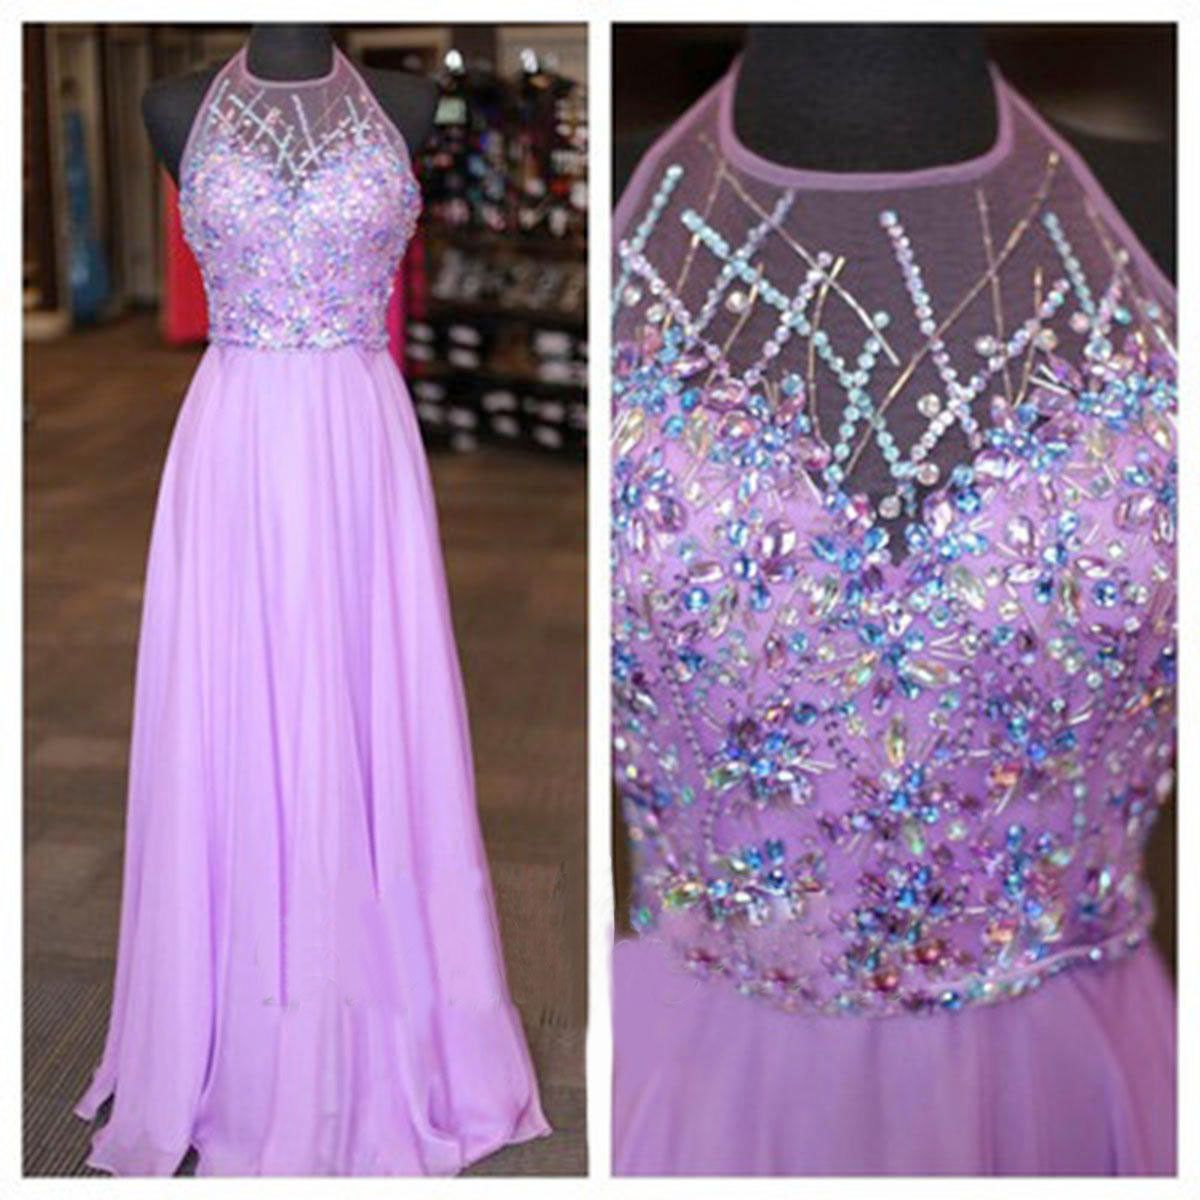 The long prom dresses are fully lined bones in the bodice chest